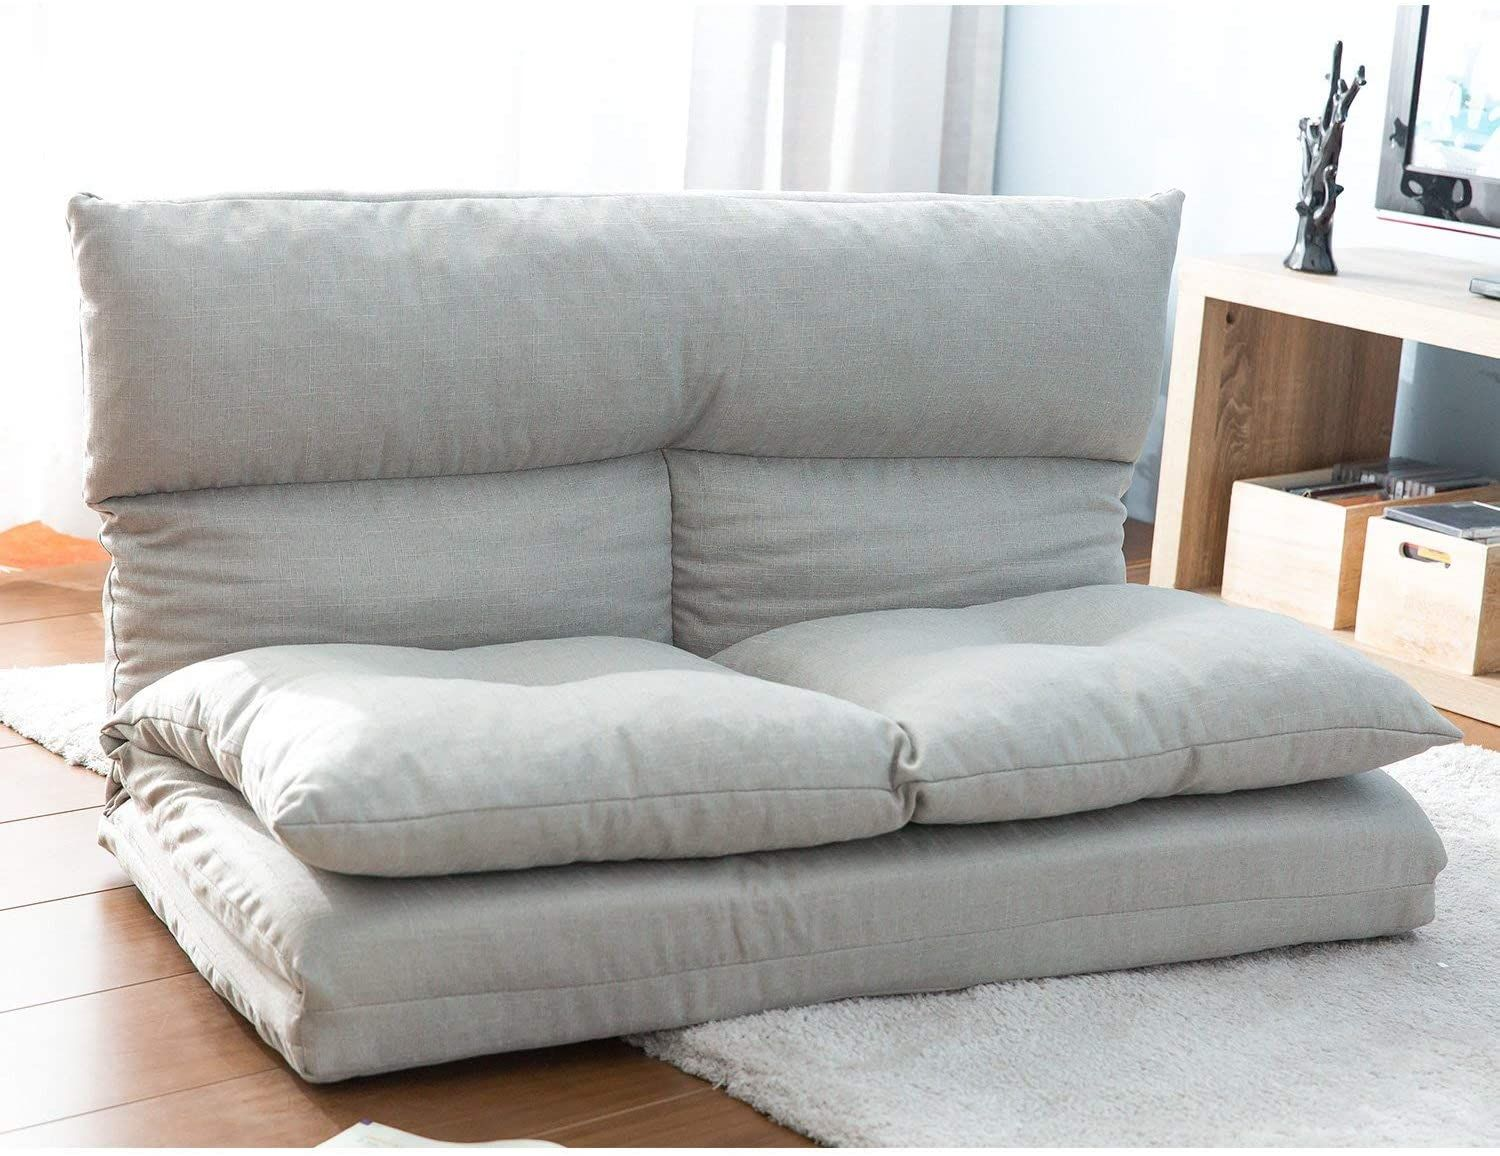 Adjustable Floor Couch Fabric Folding Floor Sofa Chaise Lounge Sofa Chair Floor Gaming Lazy Sofa Grey In 2020 Floor Couch Gaming Sofa Grey Furniture Living Room